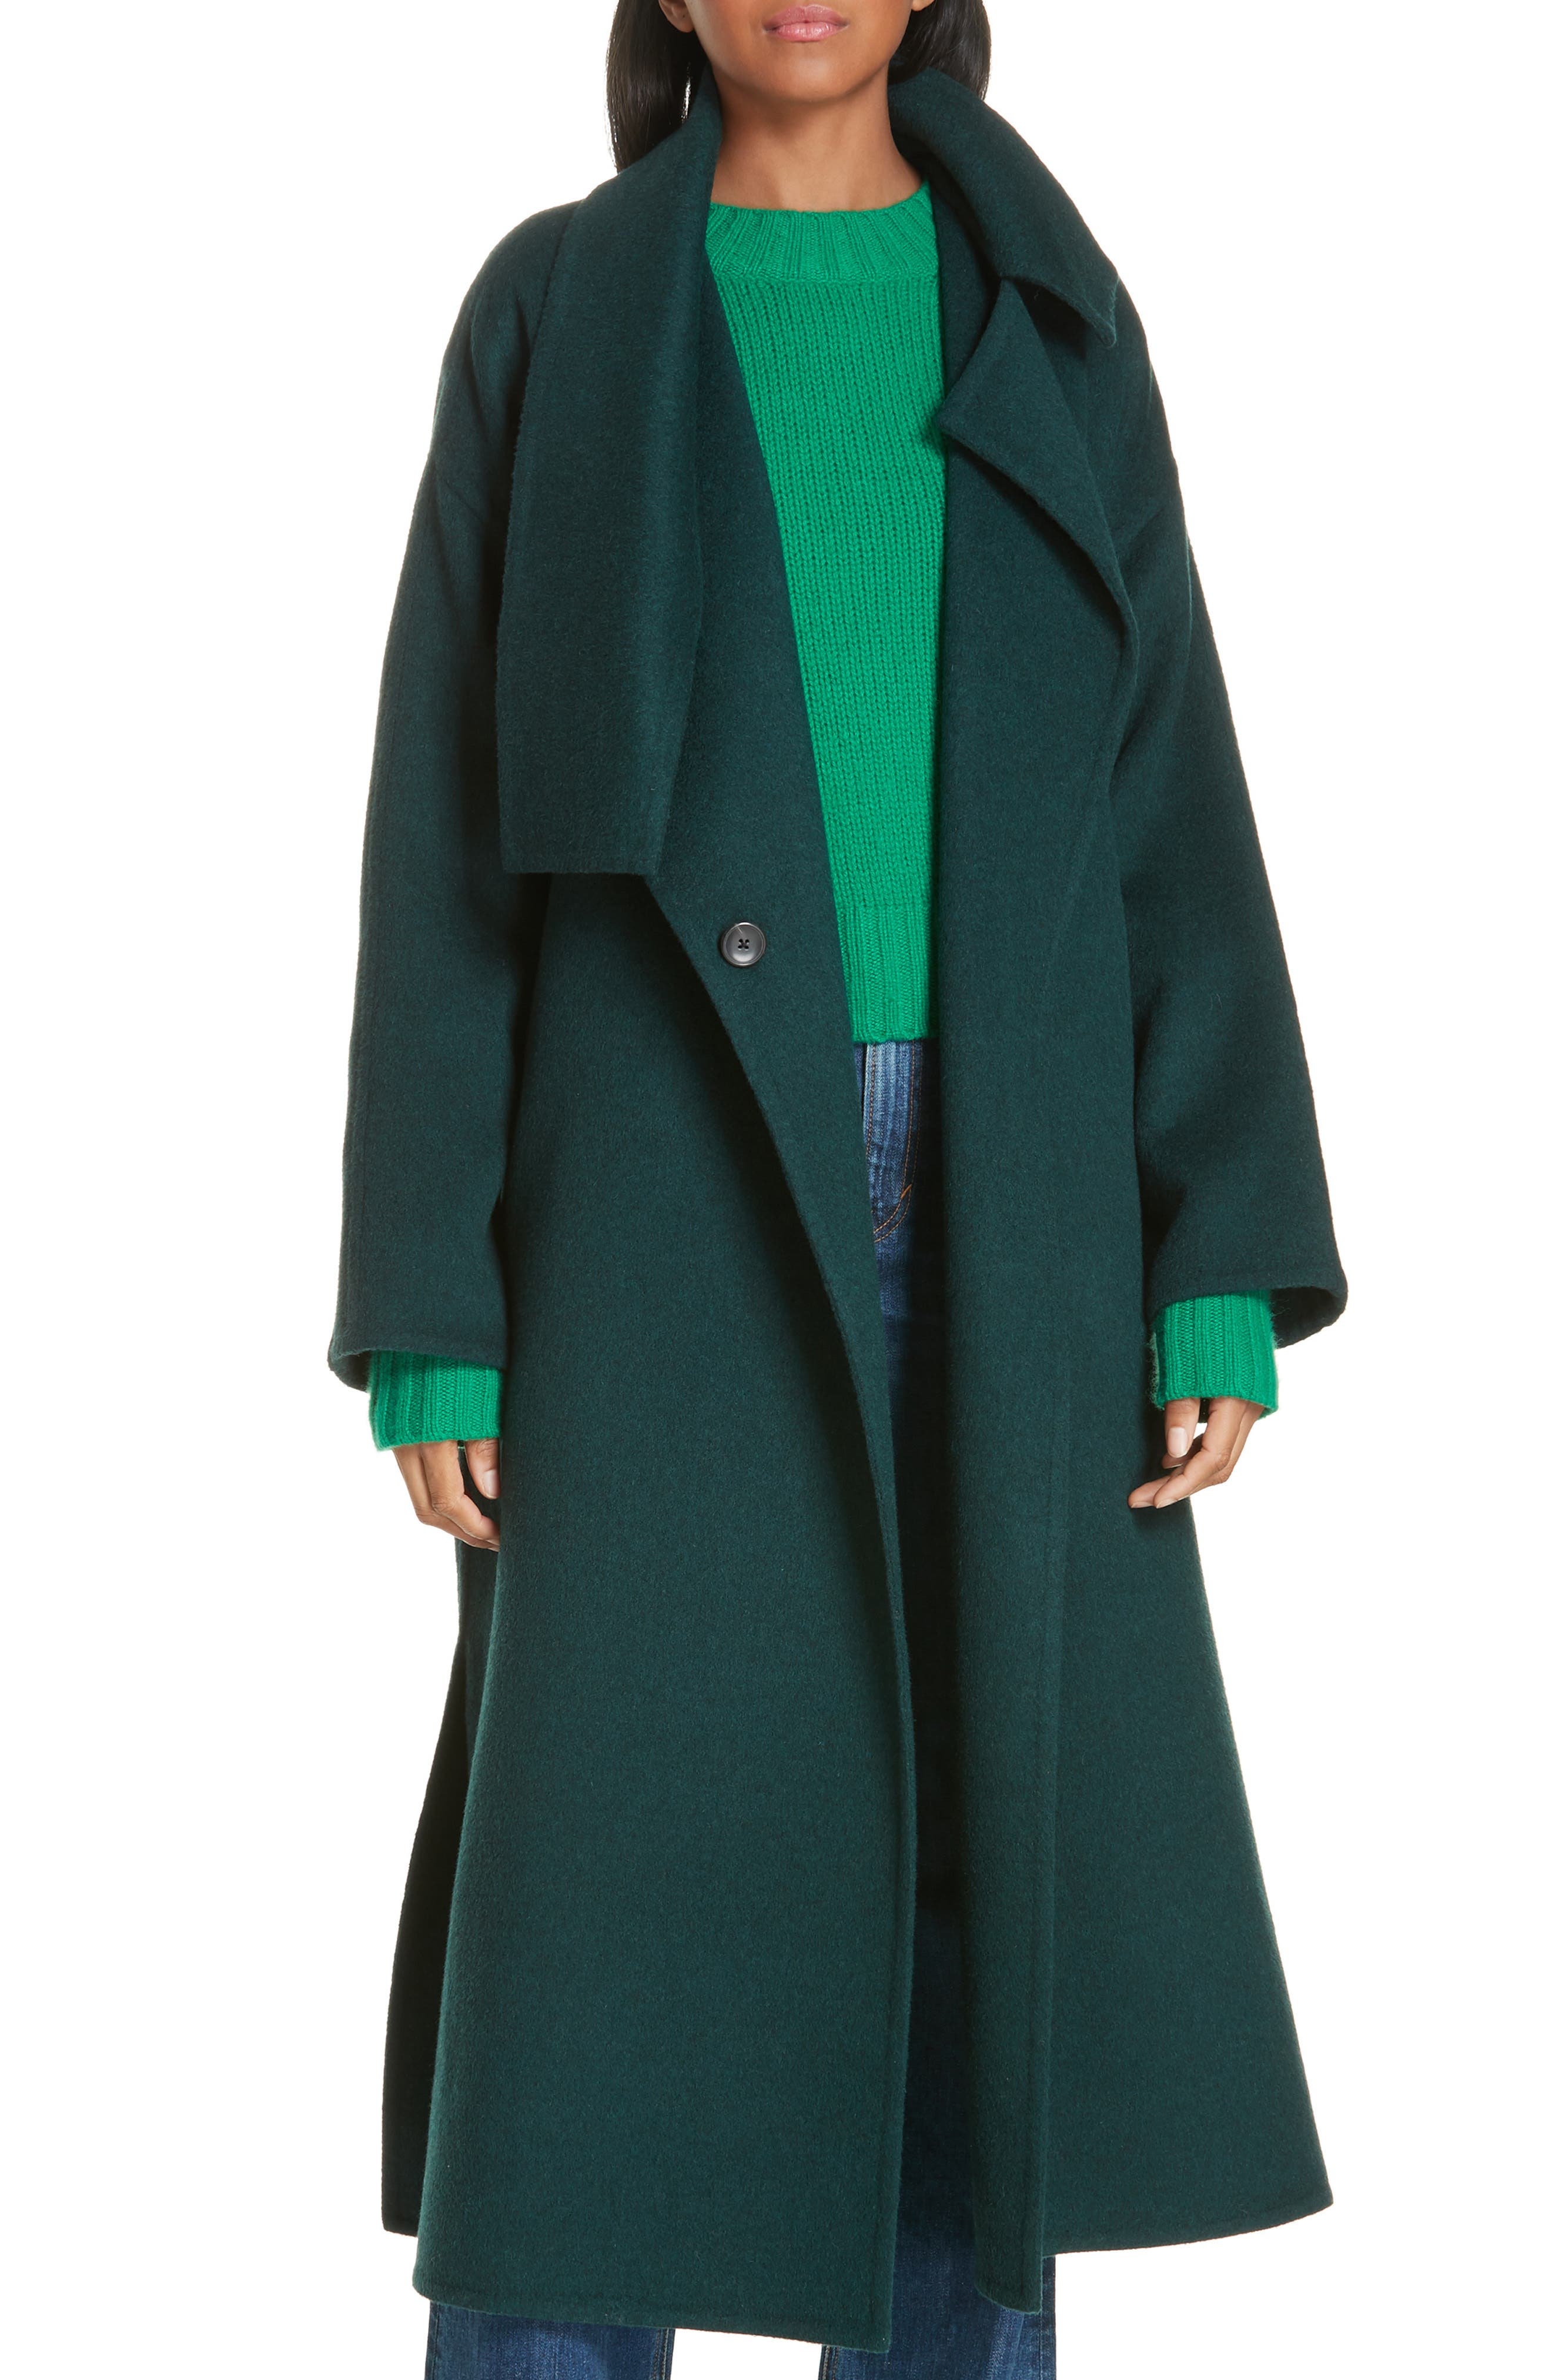 VINCE, Belted Wool Blend Cozy Coat, Main thumbnail 1, color, DARK PALM